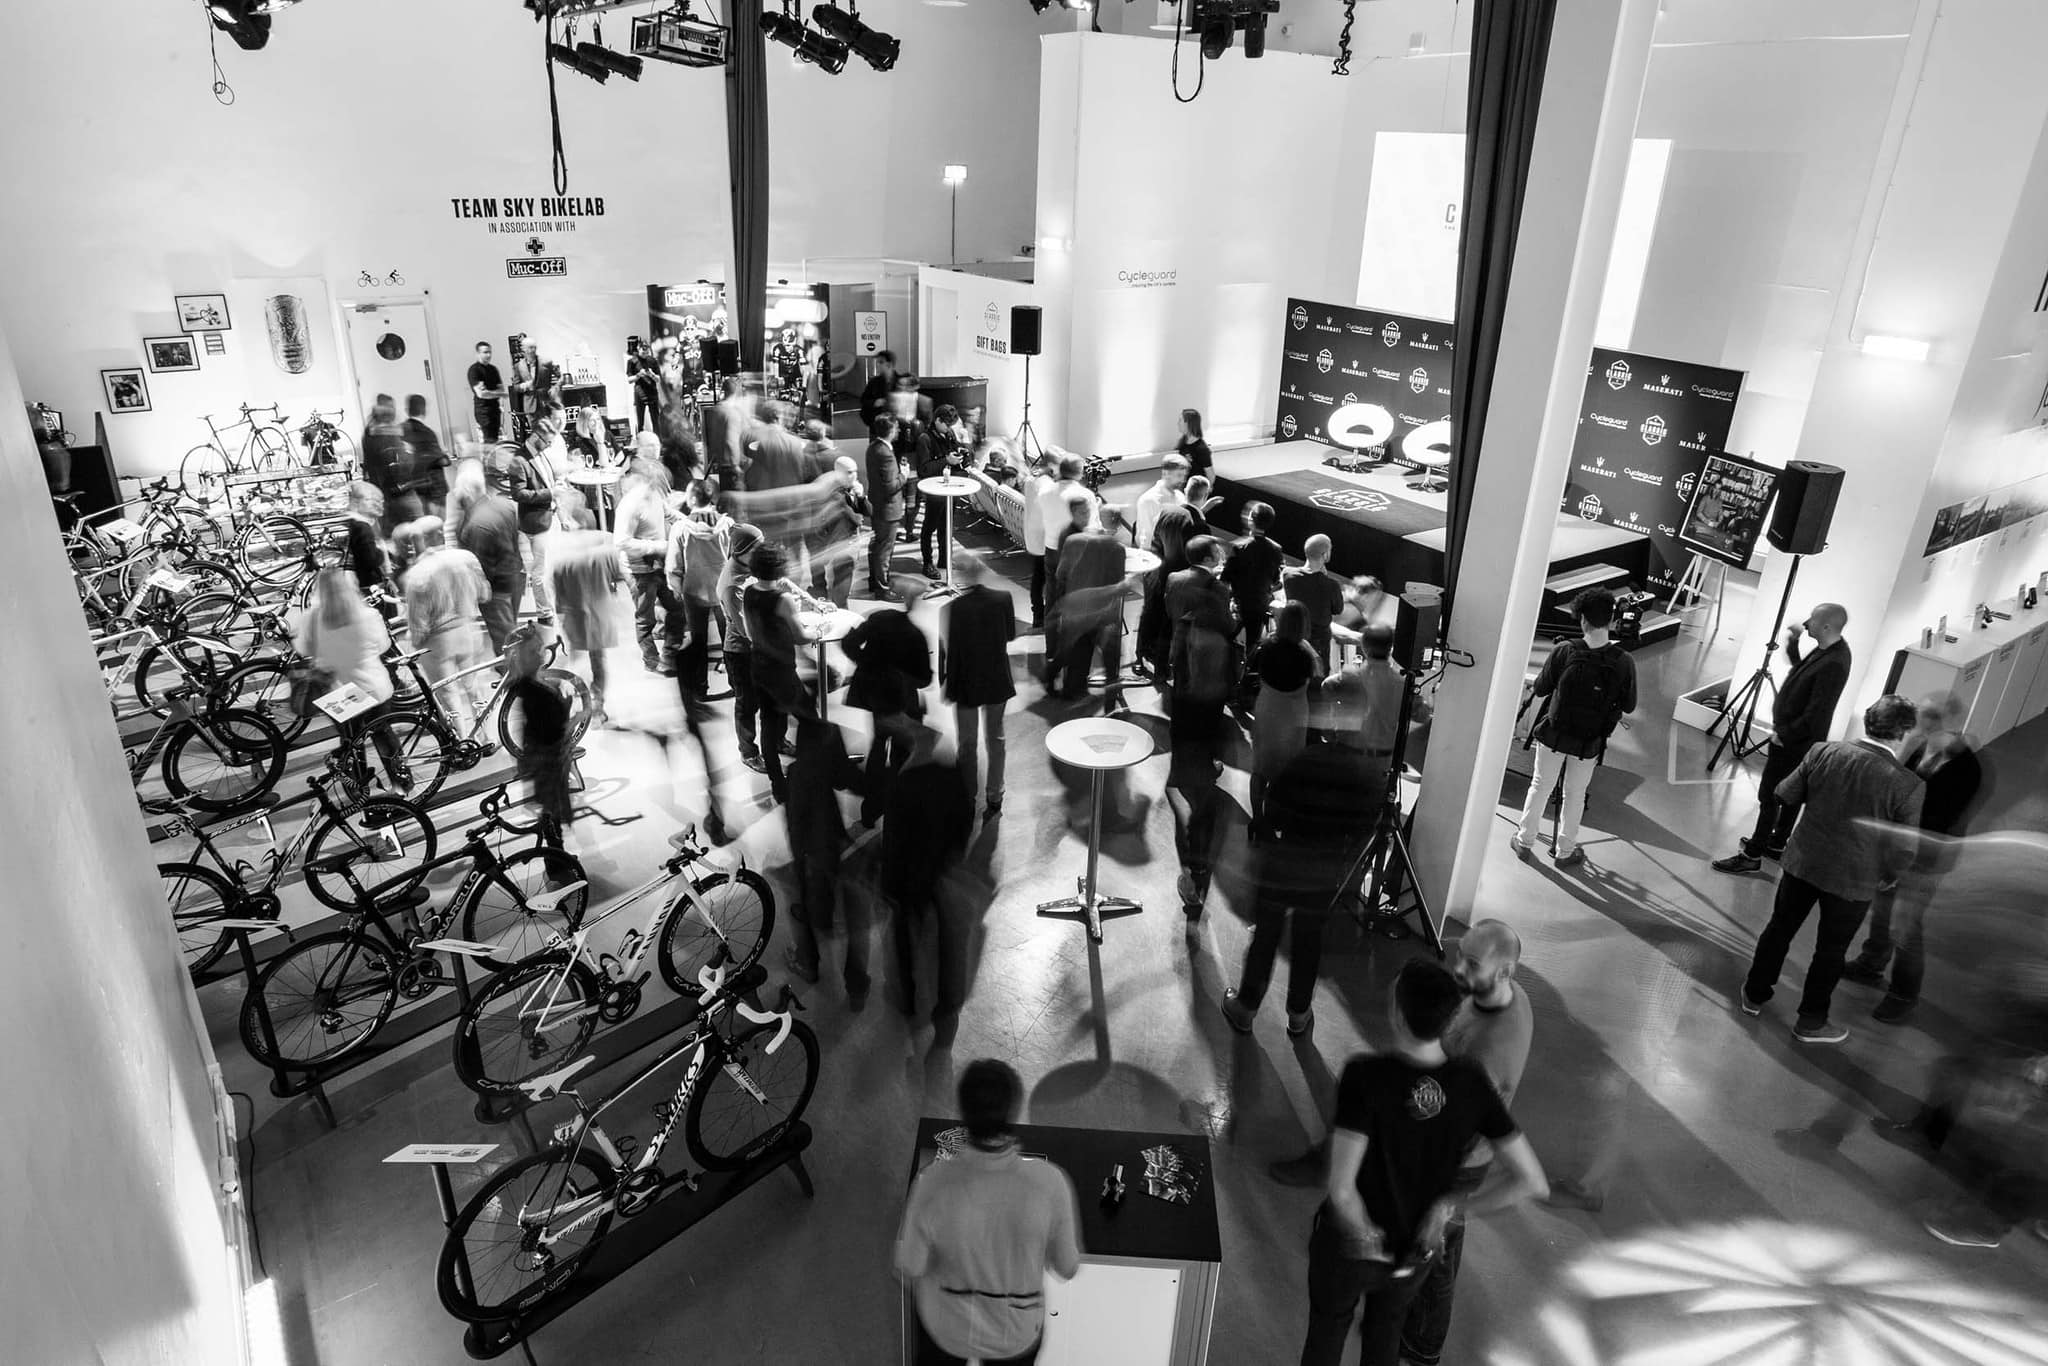 The Rouleur Classic took place in London